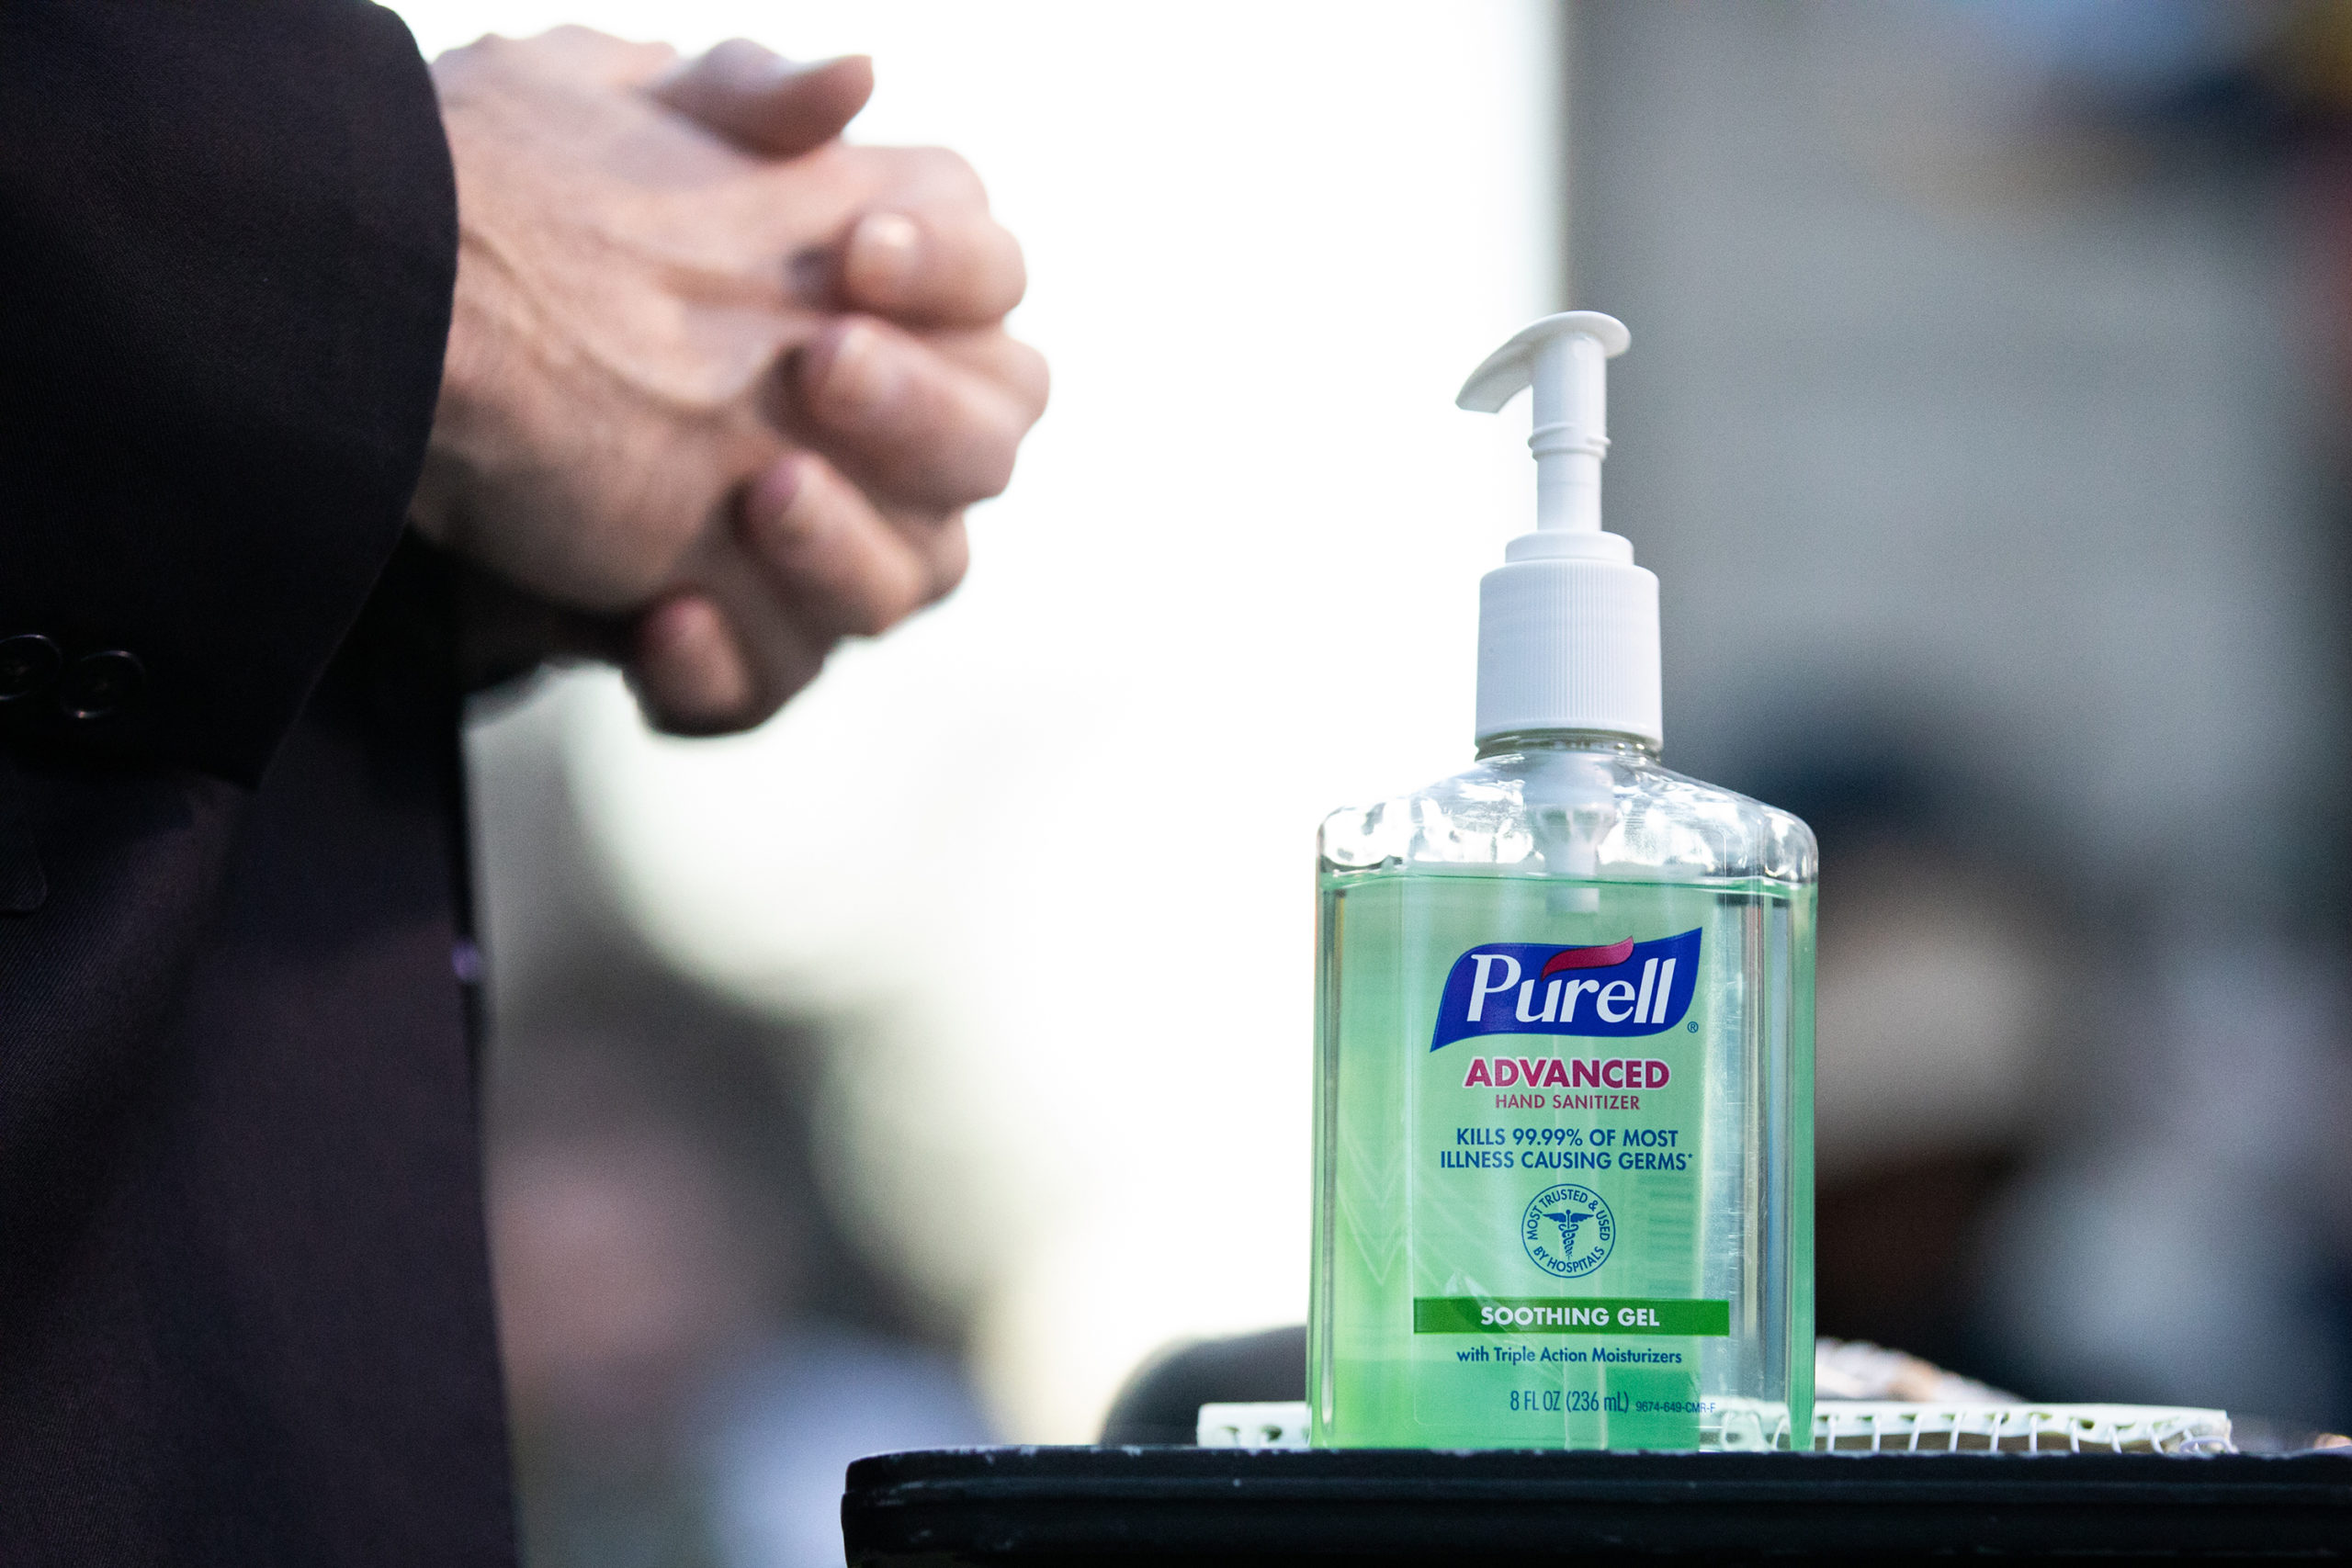 A bottle of hand-sanitizer is seen.